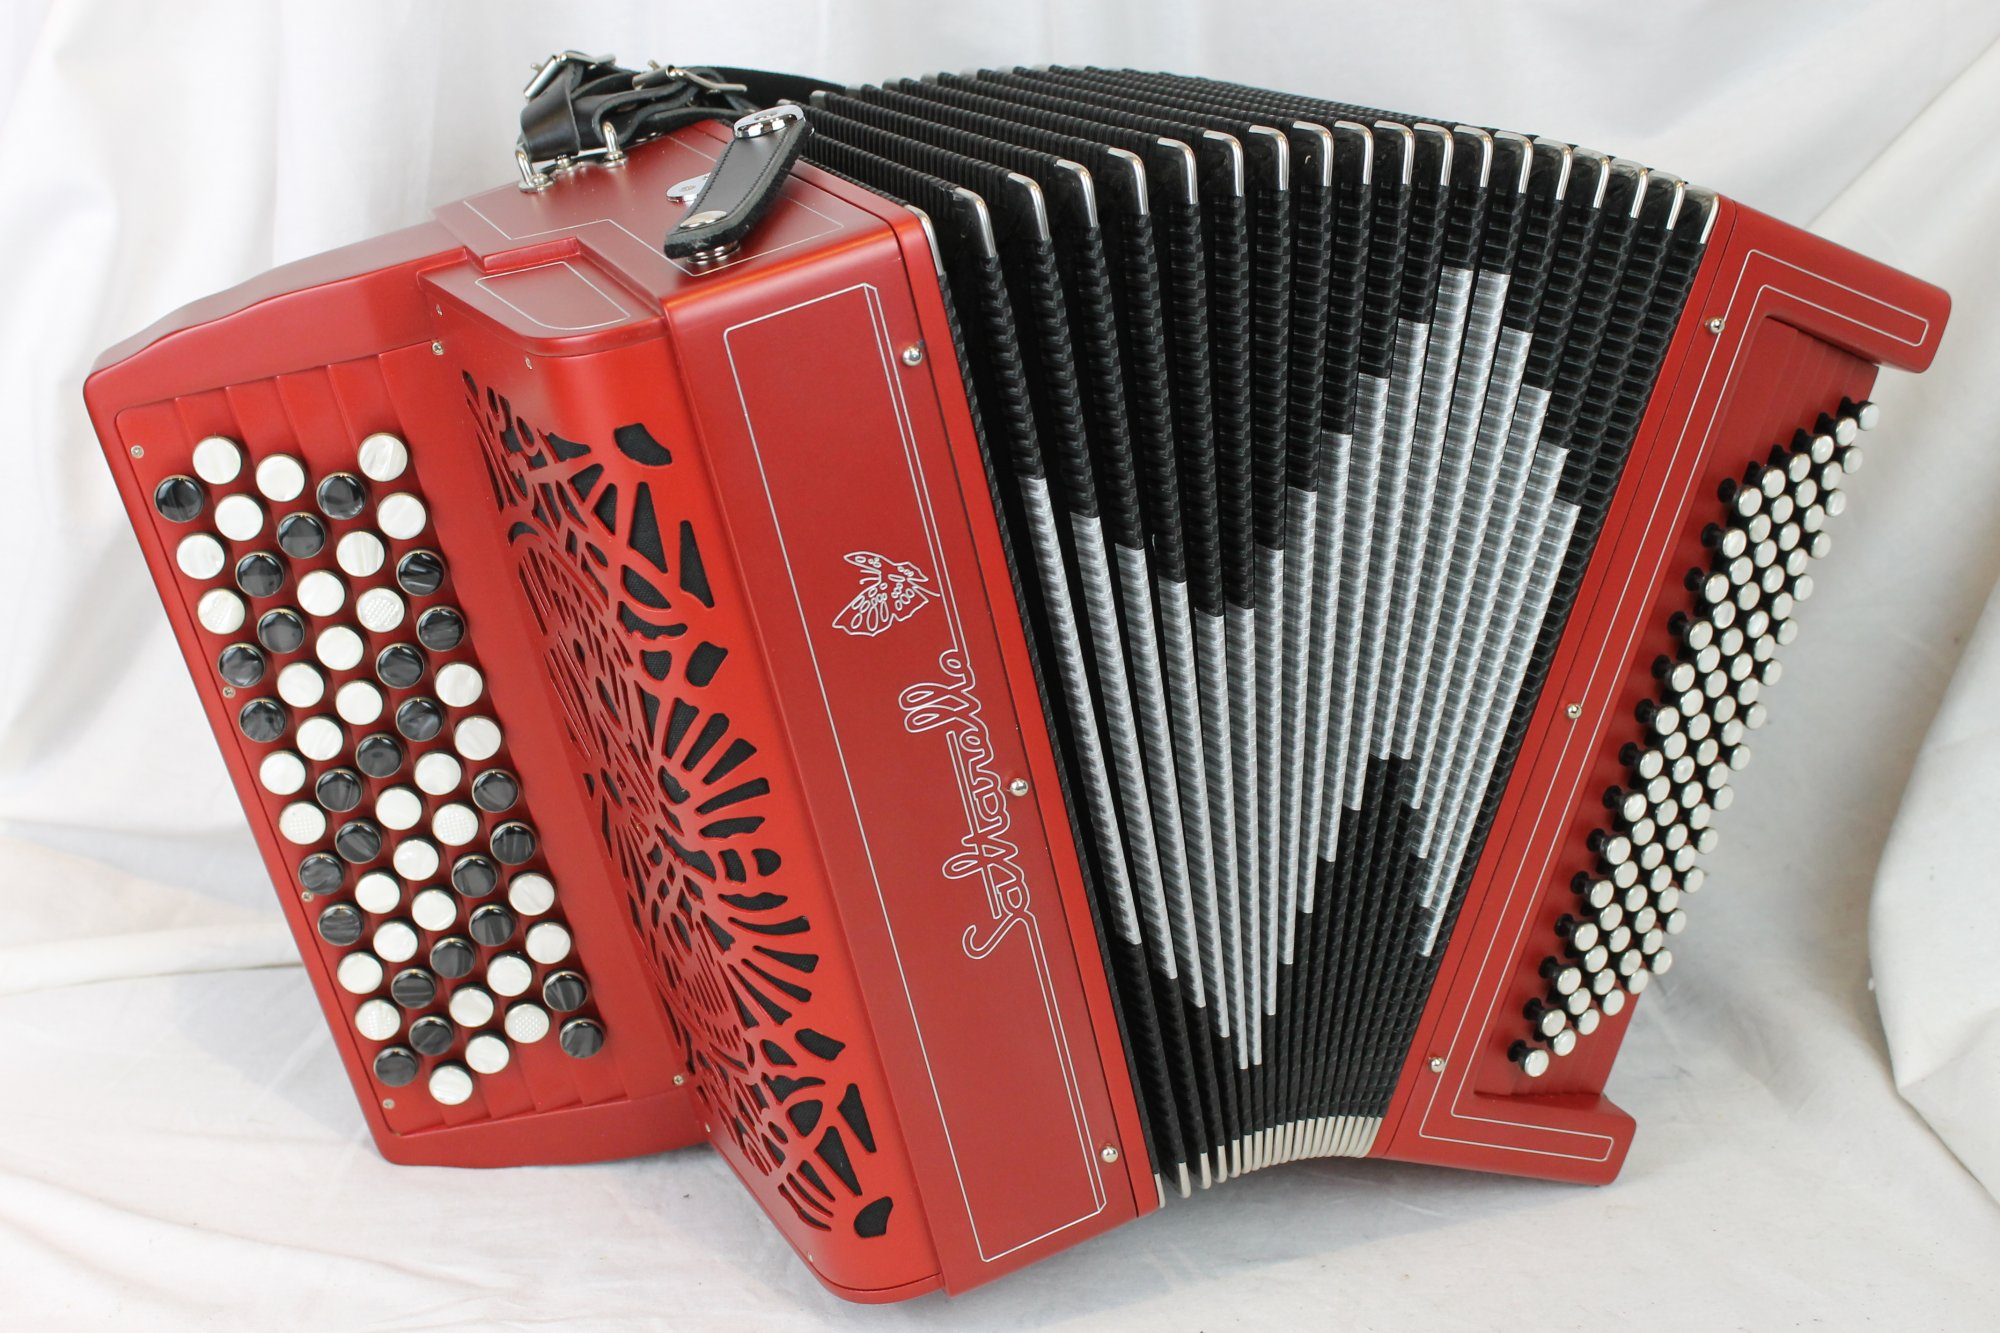 NEW Red Saltarelle Agapanthe Chromatic Button Accordion C LMM 60 84